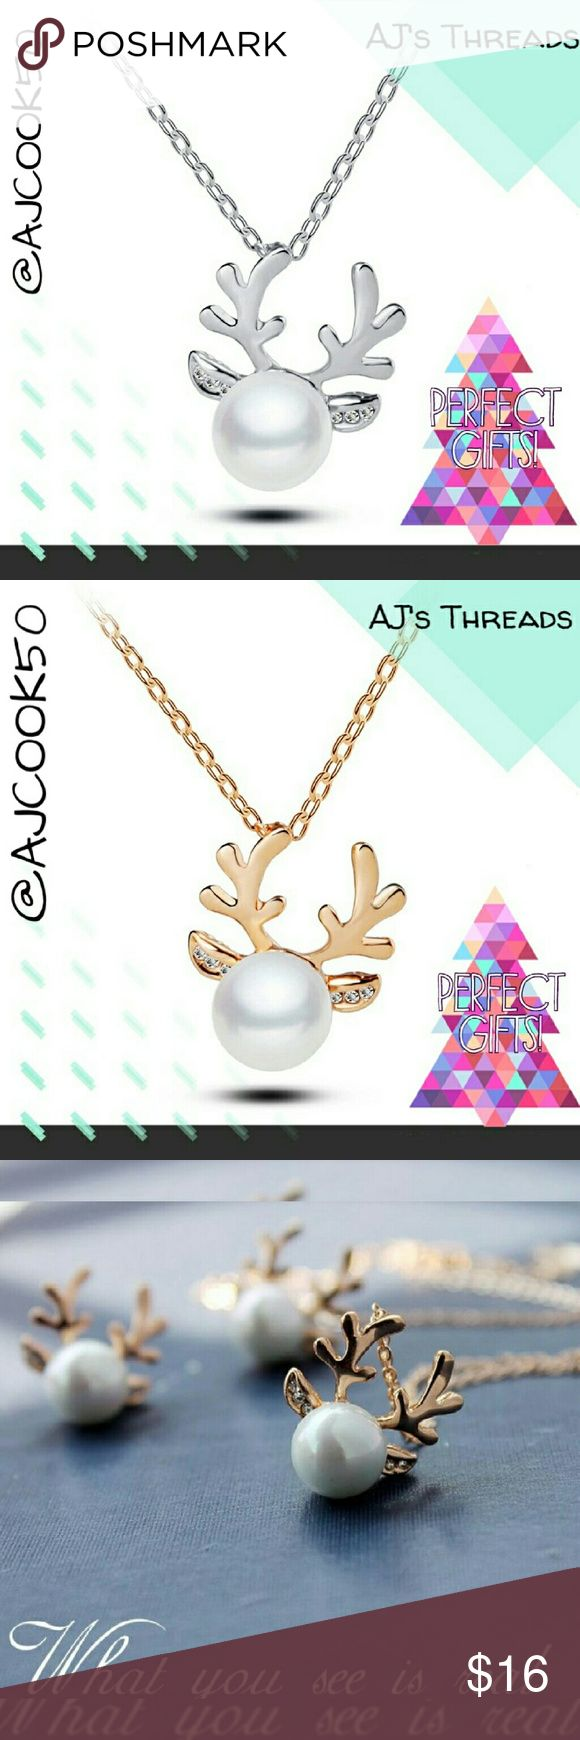 Reindeer Antler Pearl Necklace This holiday festive drop necklace features a pearl inset and rhinestone jewels. Perfect for holiday parties,  white elephant gifts and stocking stuffers. Only gold available Jewelry Necklaces